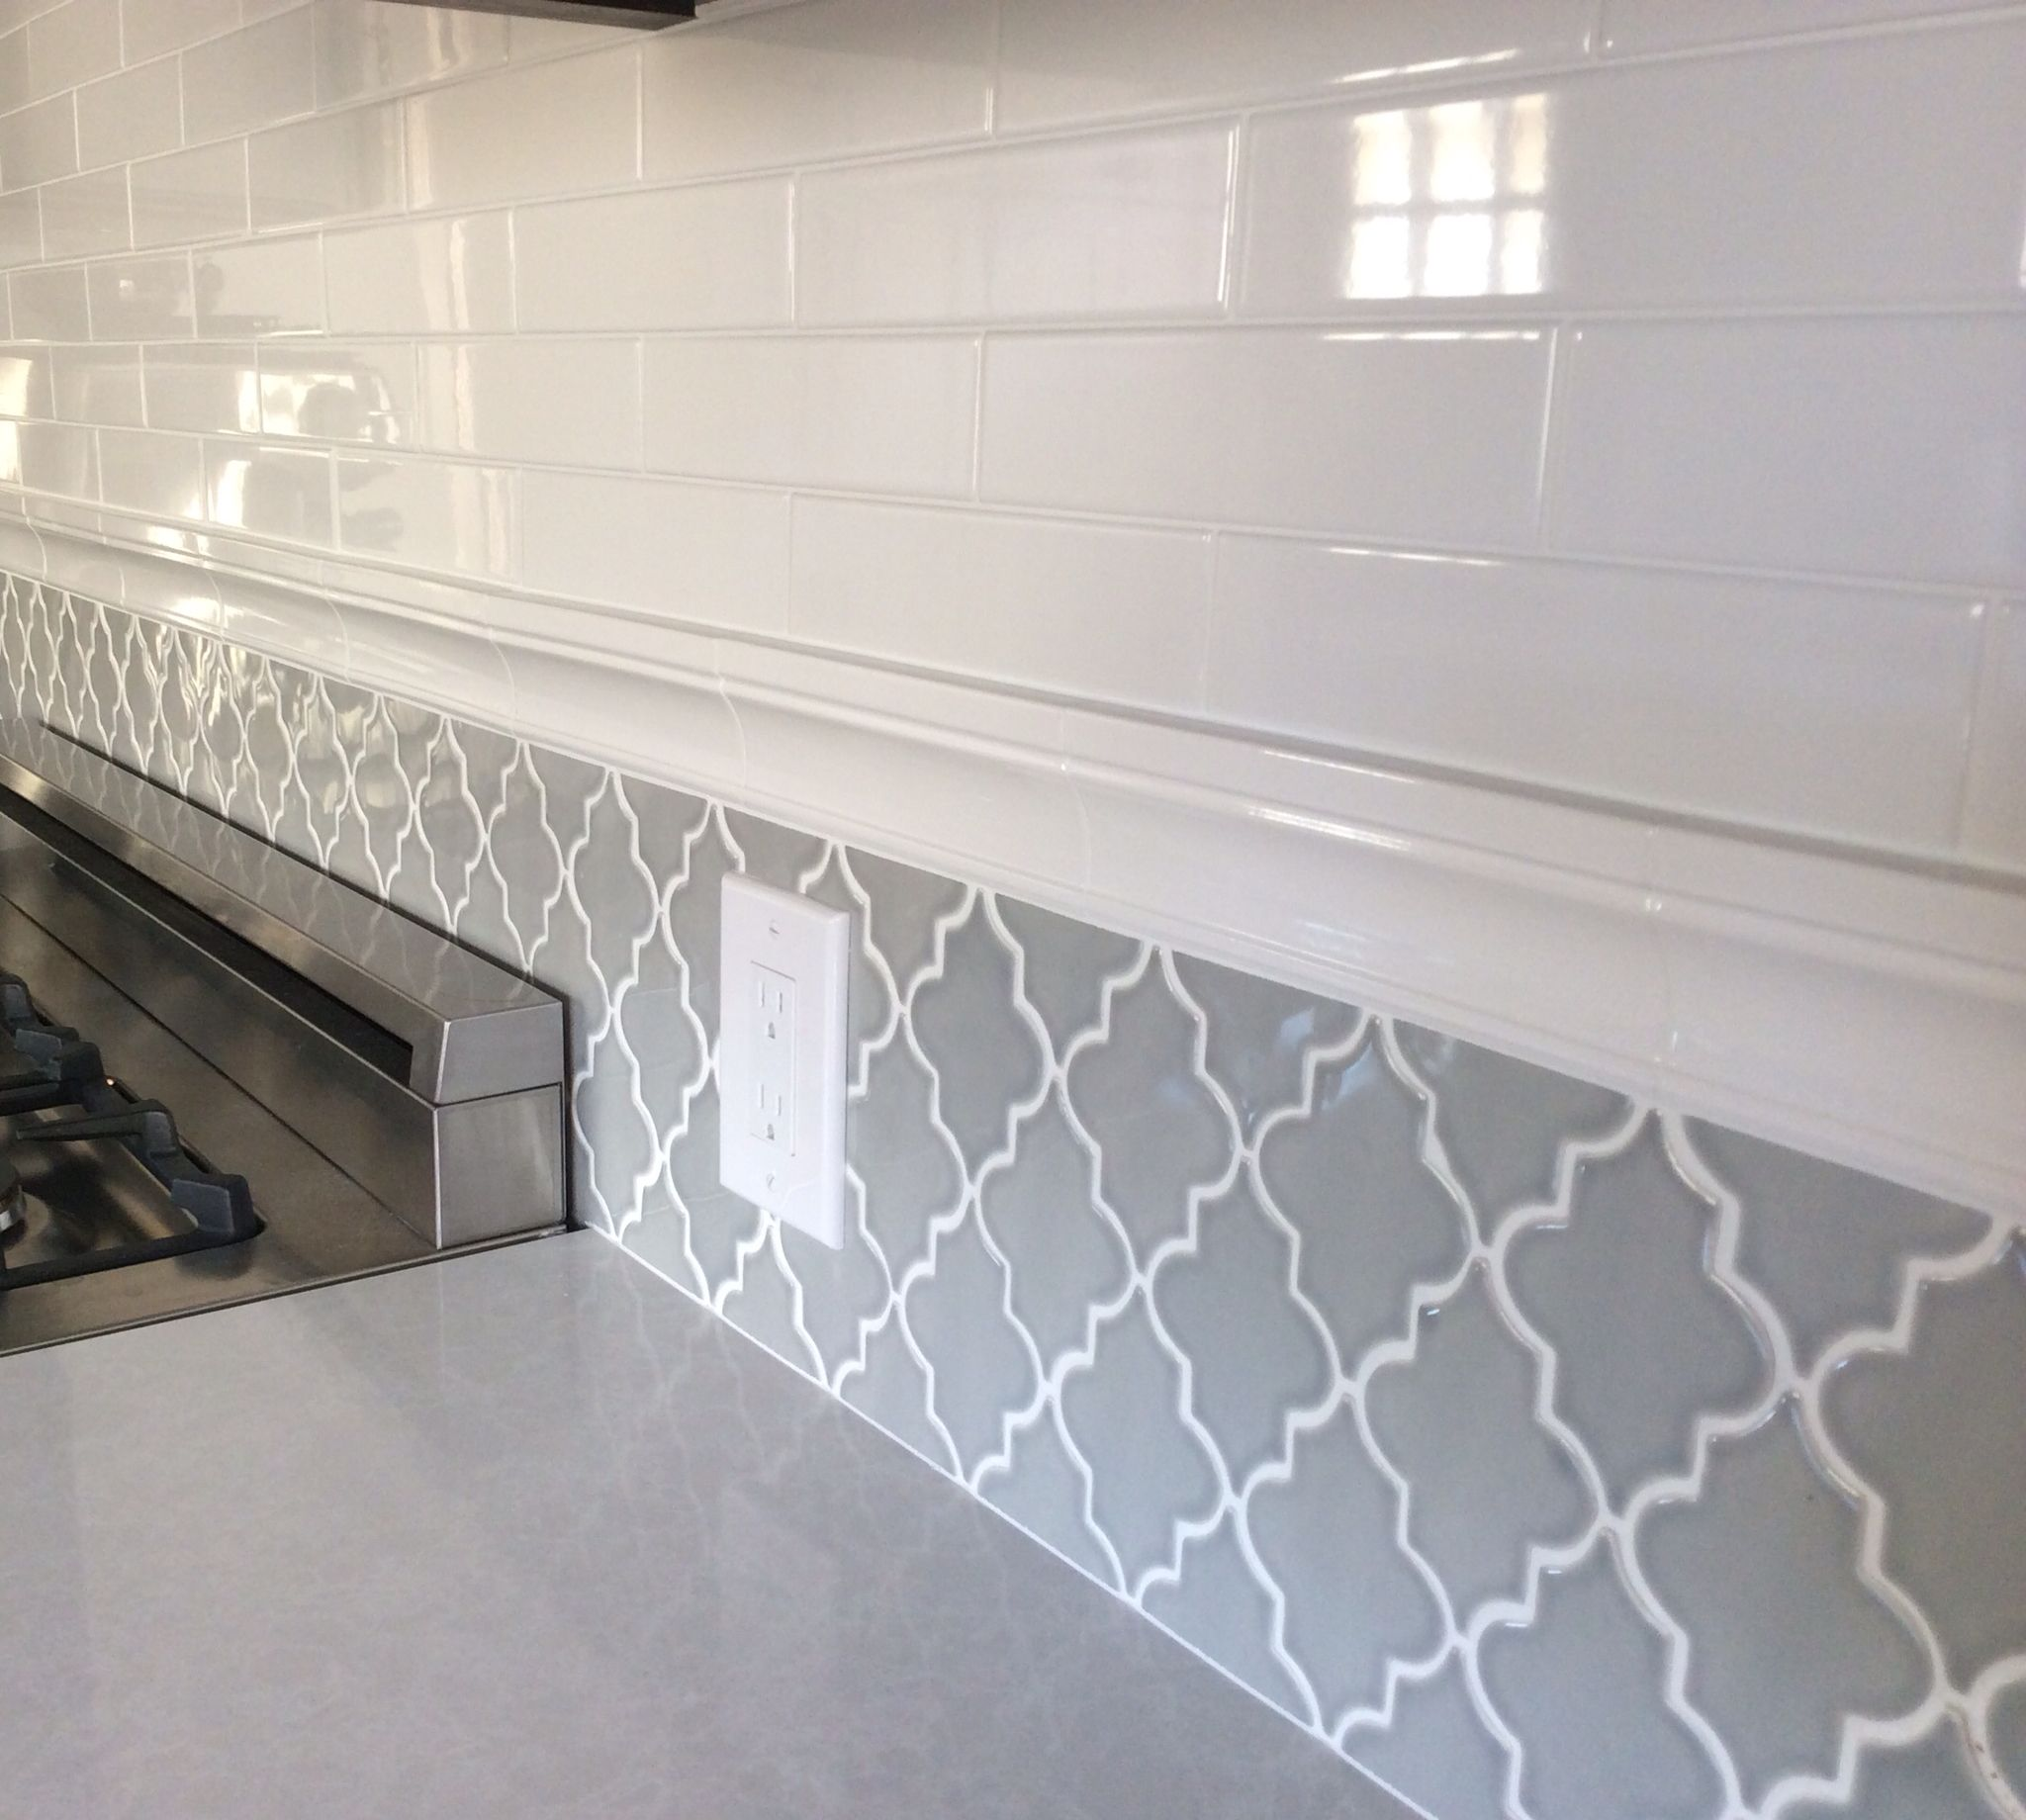 Best Backsplash In My New Kitchen Subway Tiles And Arabesque 400 x 300